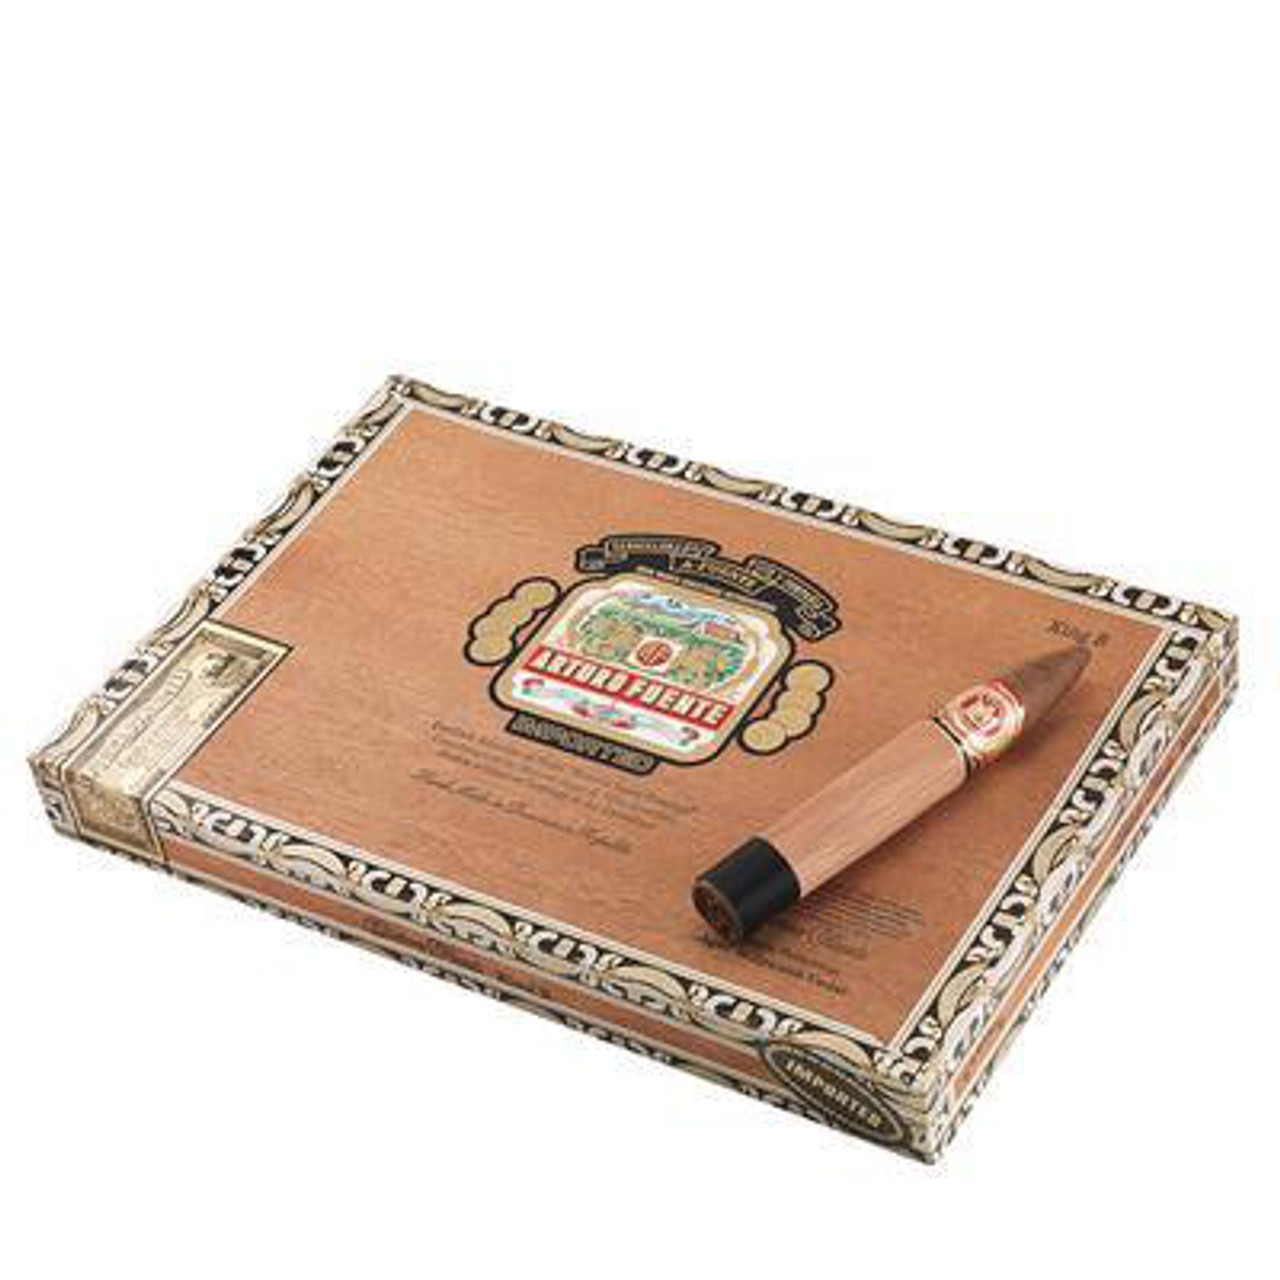 Arturo Fuente King B Sungrown Cigars - 6 x 55 (Box of 18)